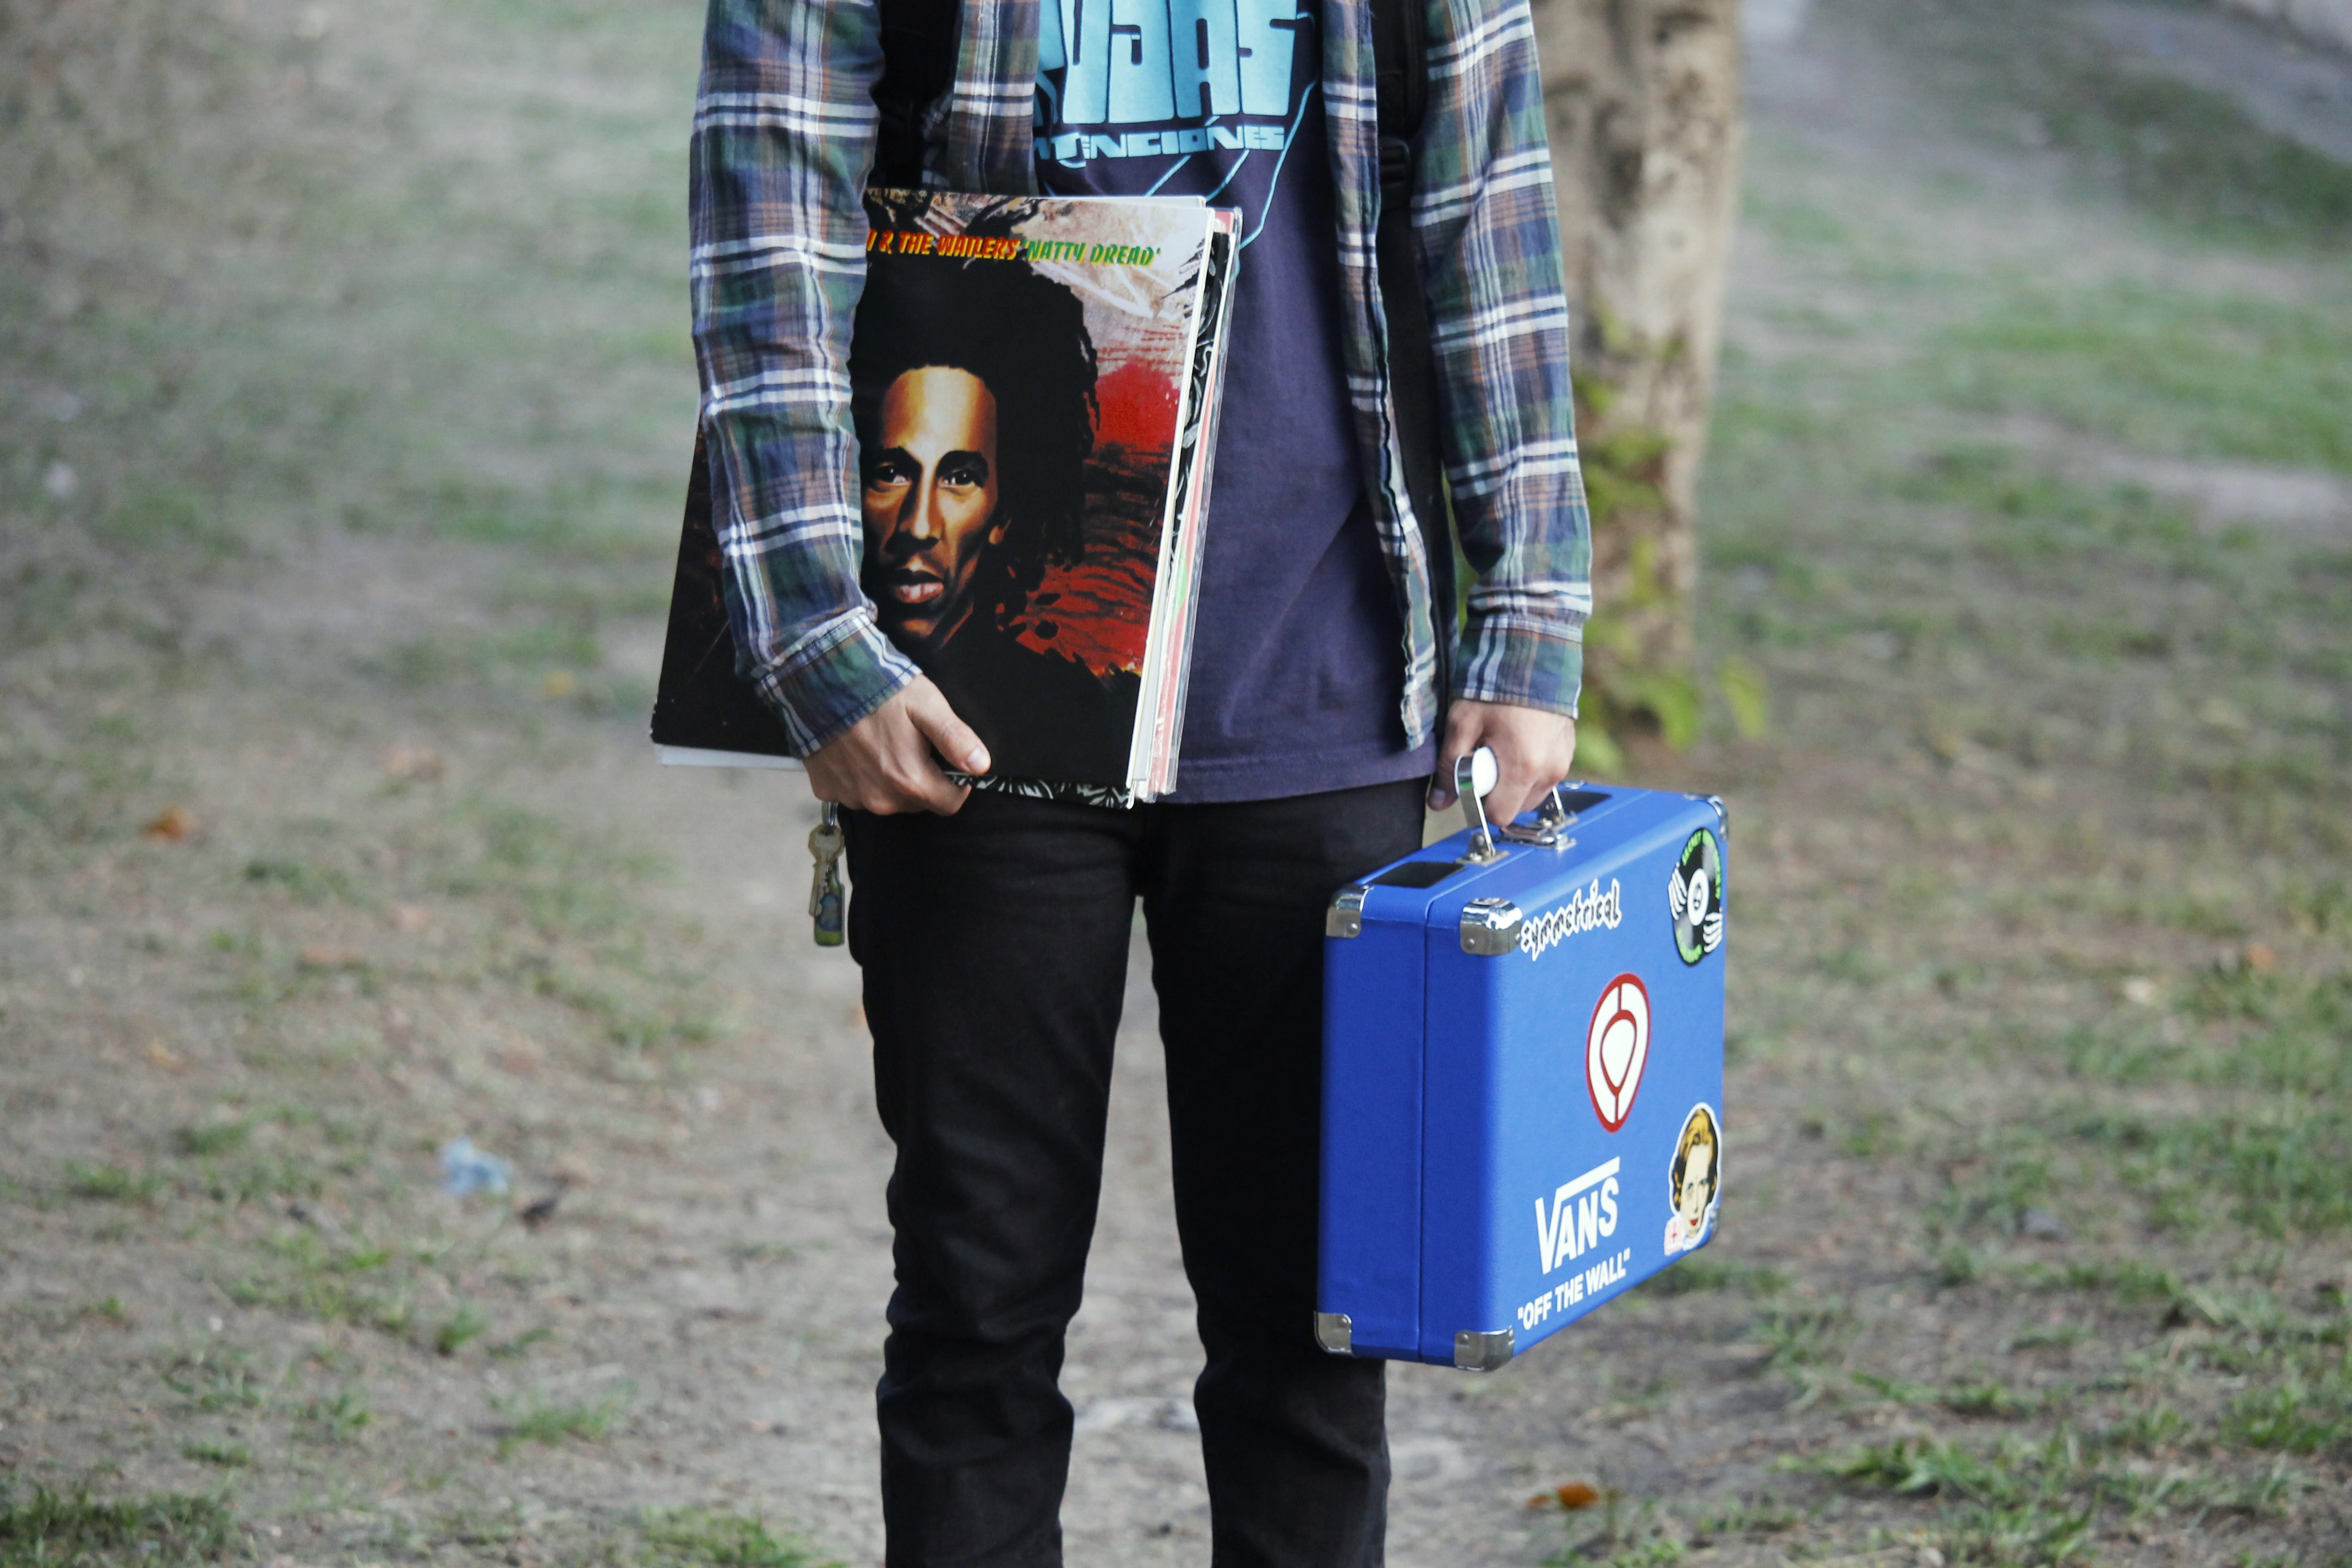 person in blue shirt holding blue suitcase